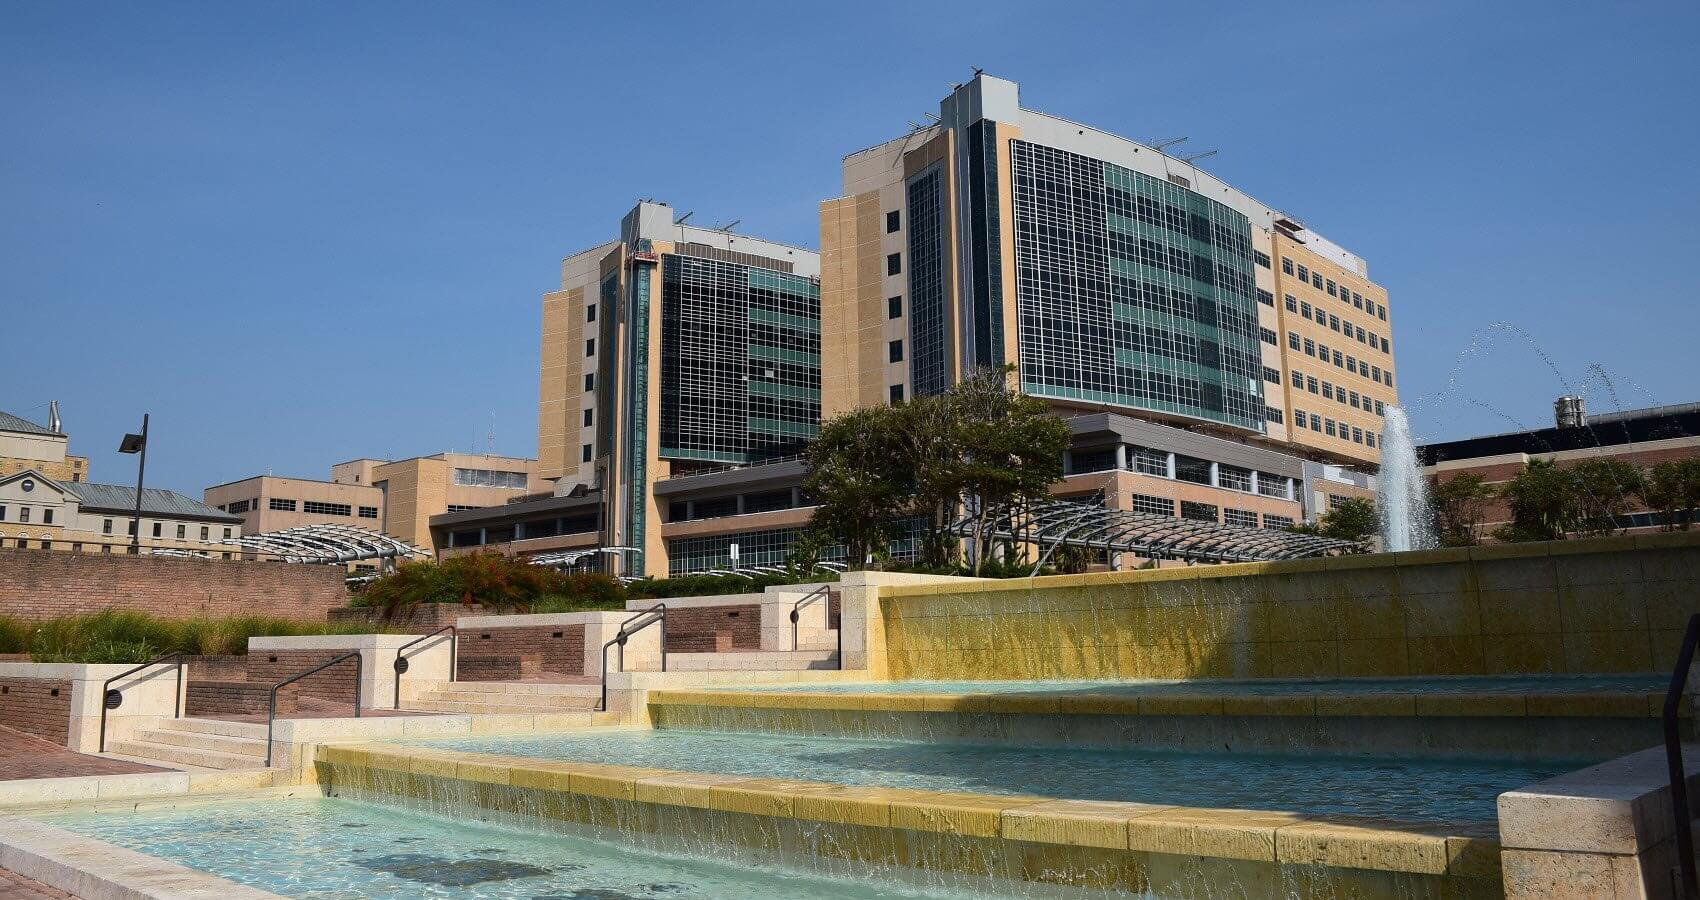 The new Jennie Sealy Hospital at the University of Texas Medical Branch at Galveston scheduled for a 2016 opening.